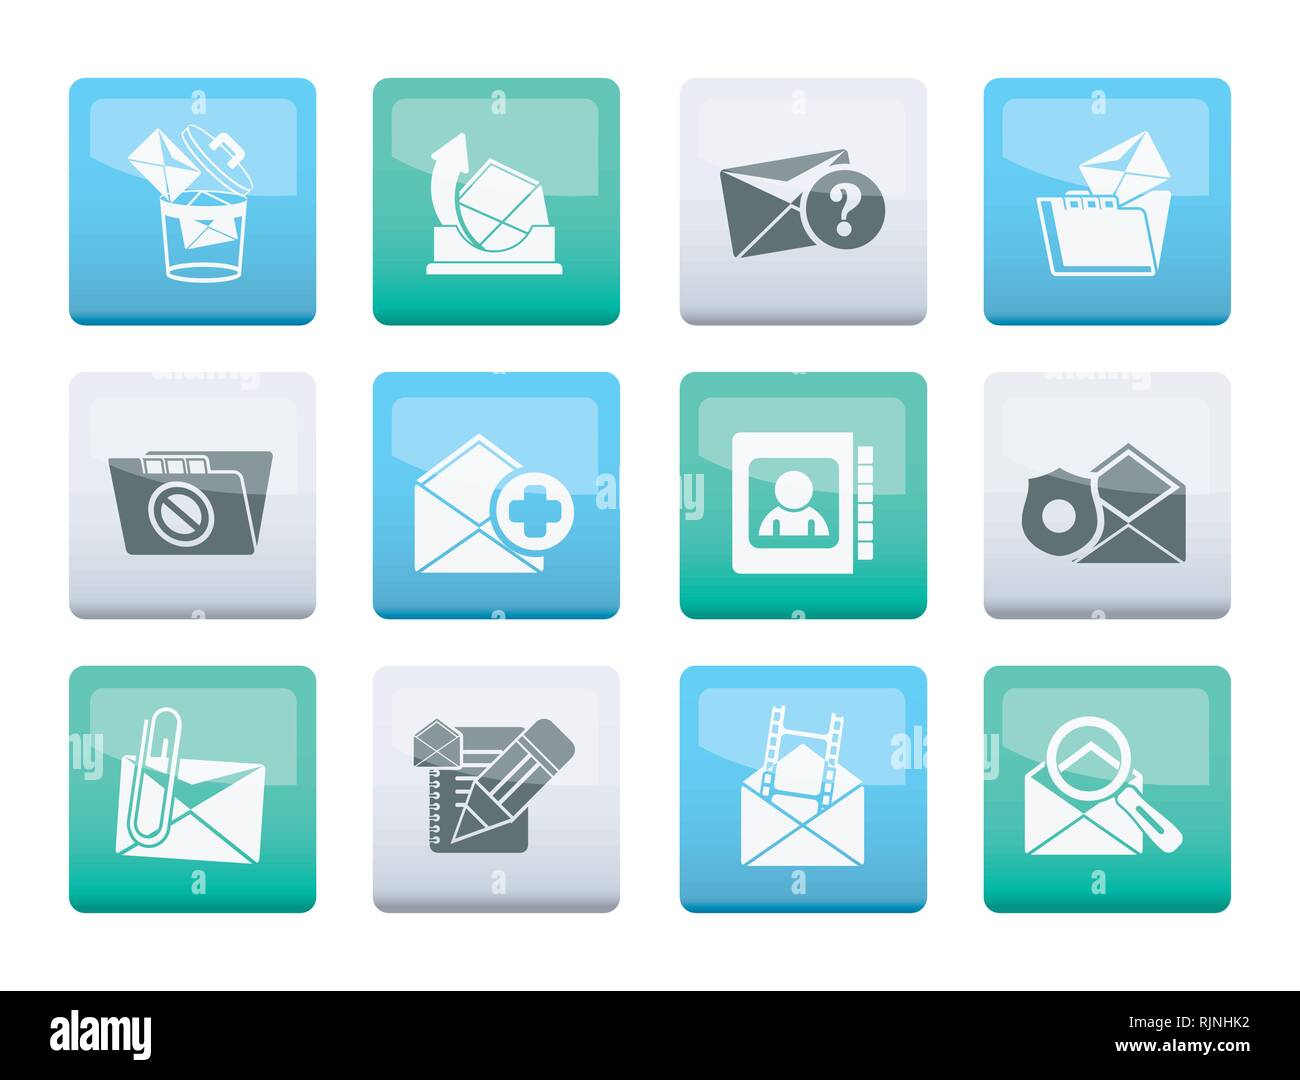 E-mail and Message Icons over color background - vector icon set - Stock Image